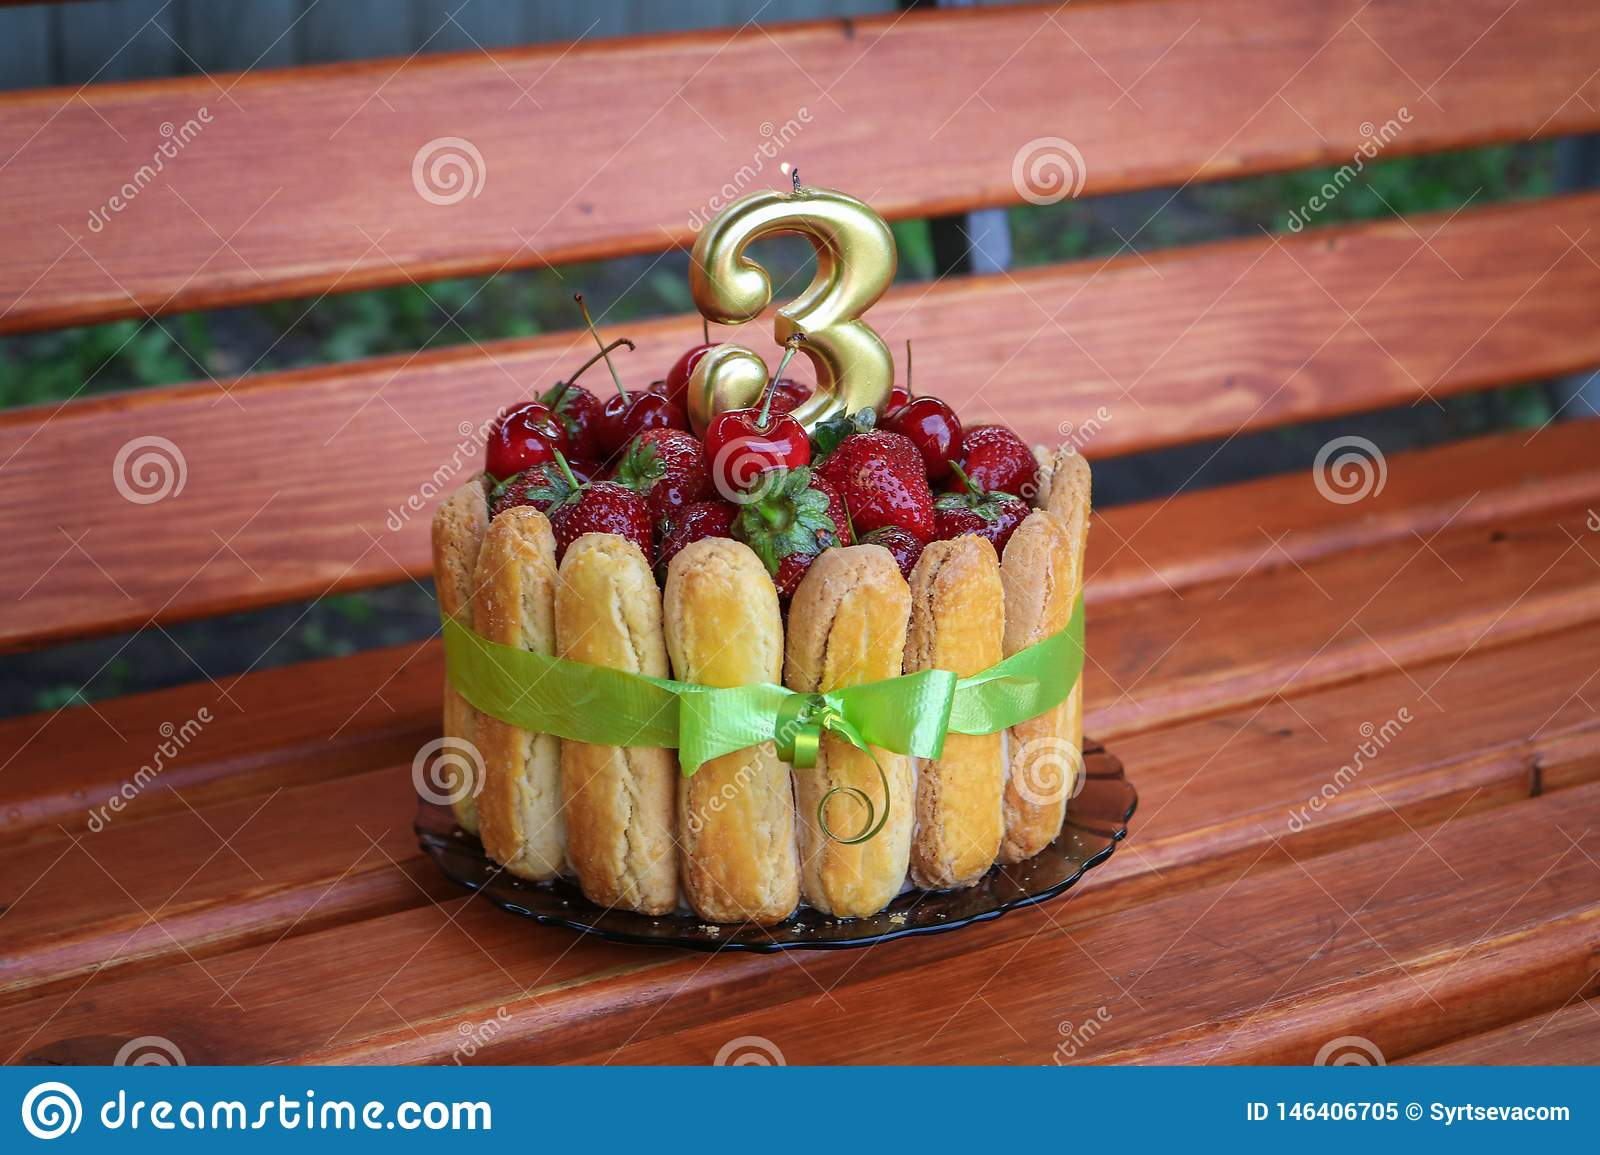 Birthday cake with strawberries and cherries on a wooden background